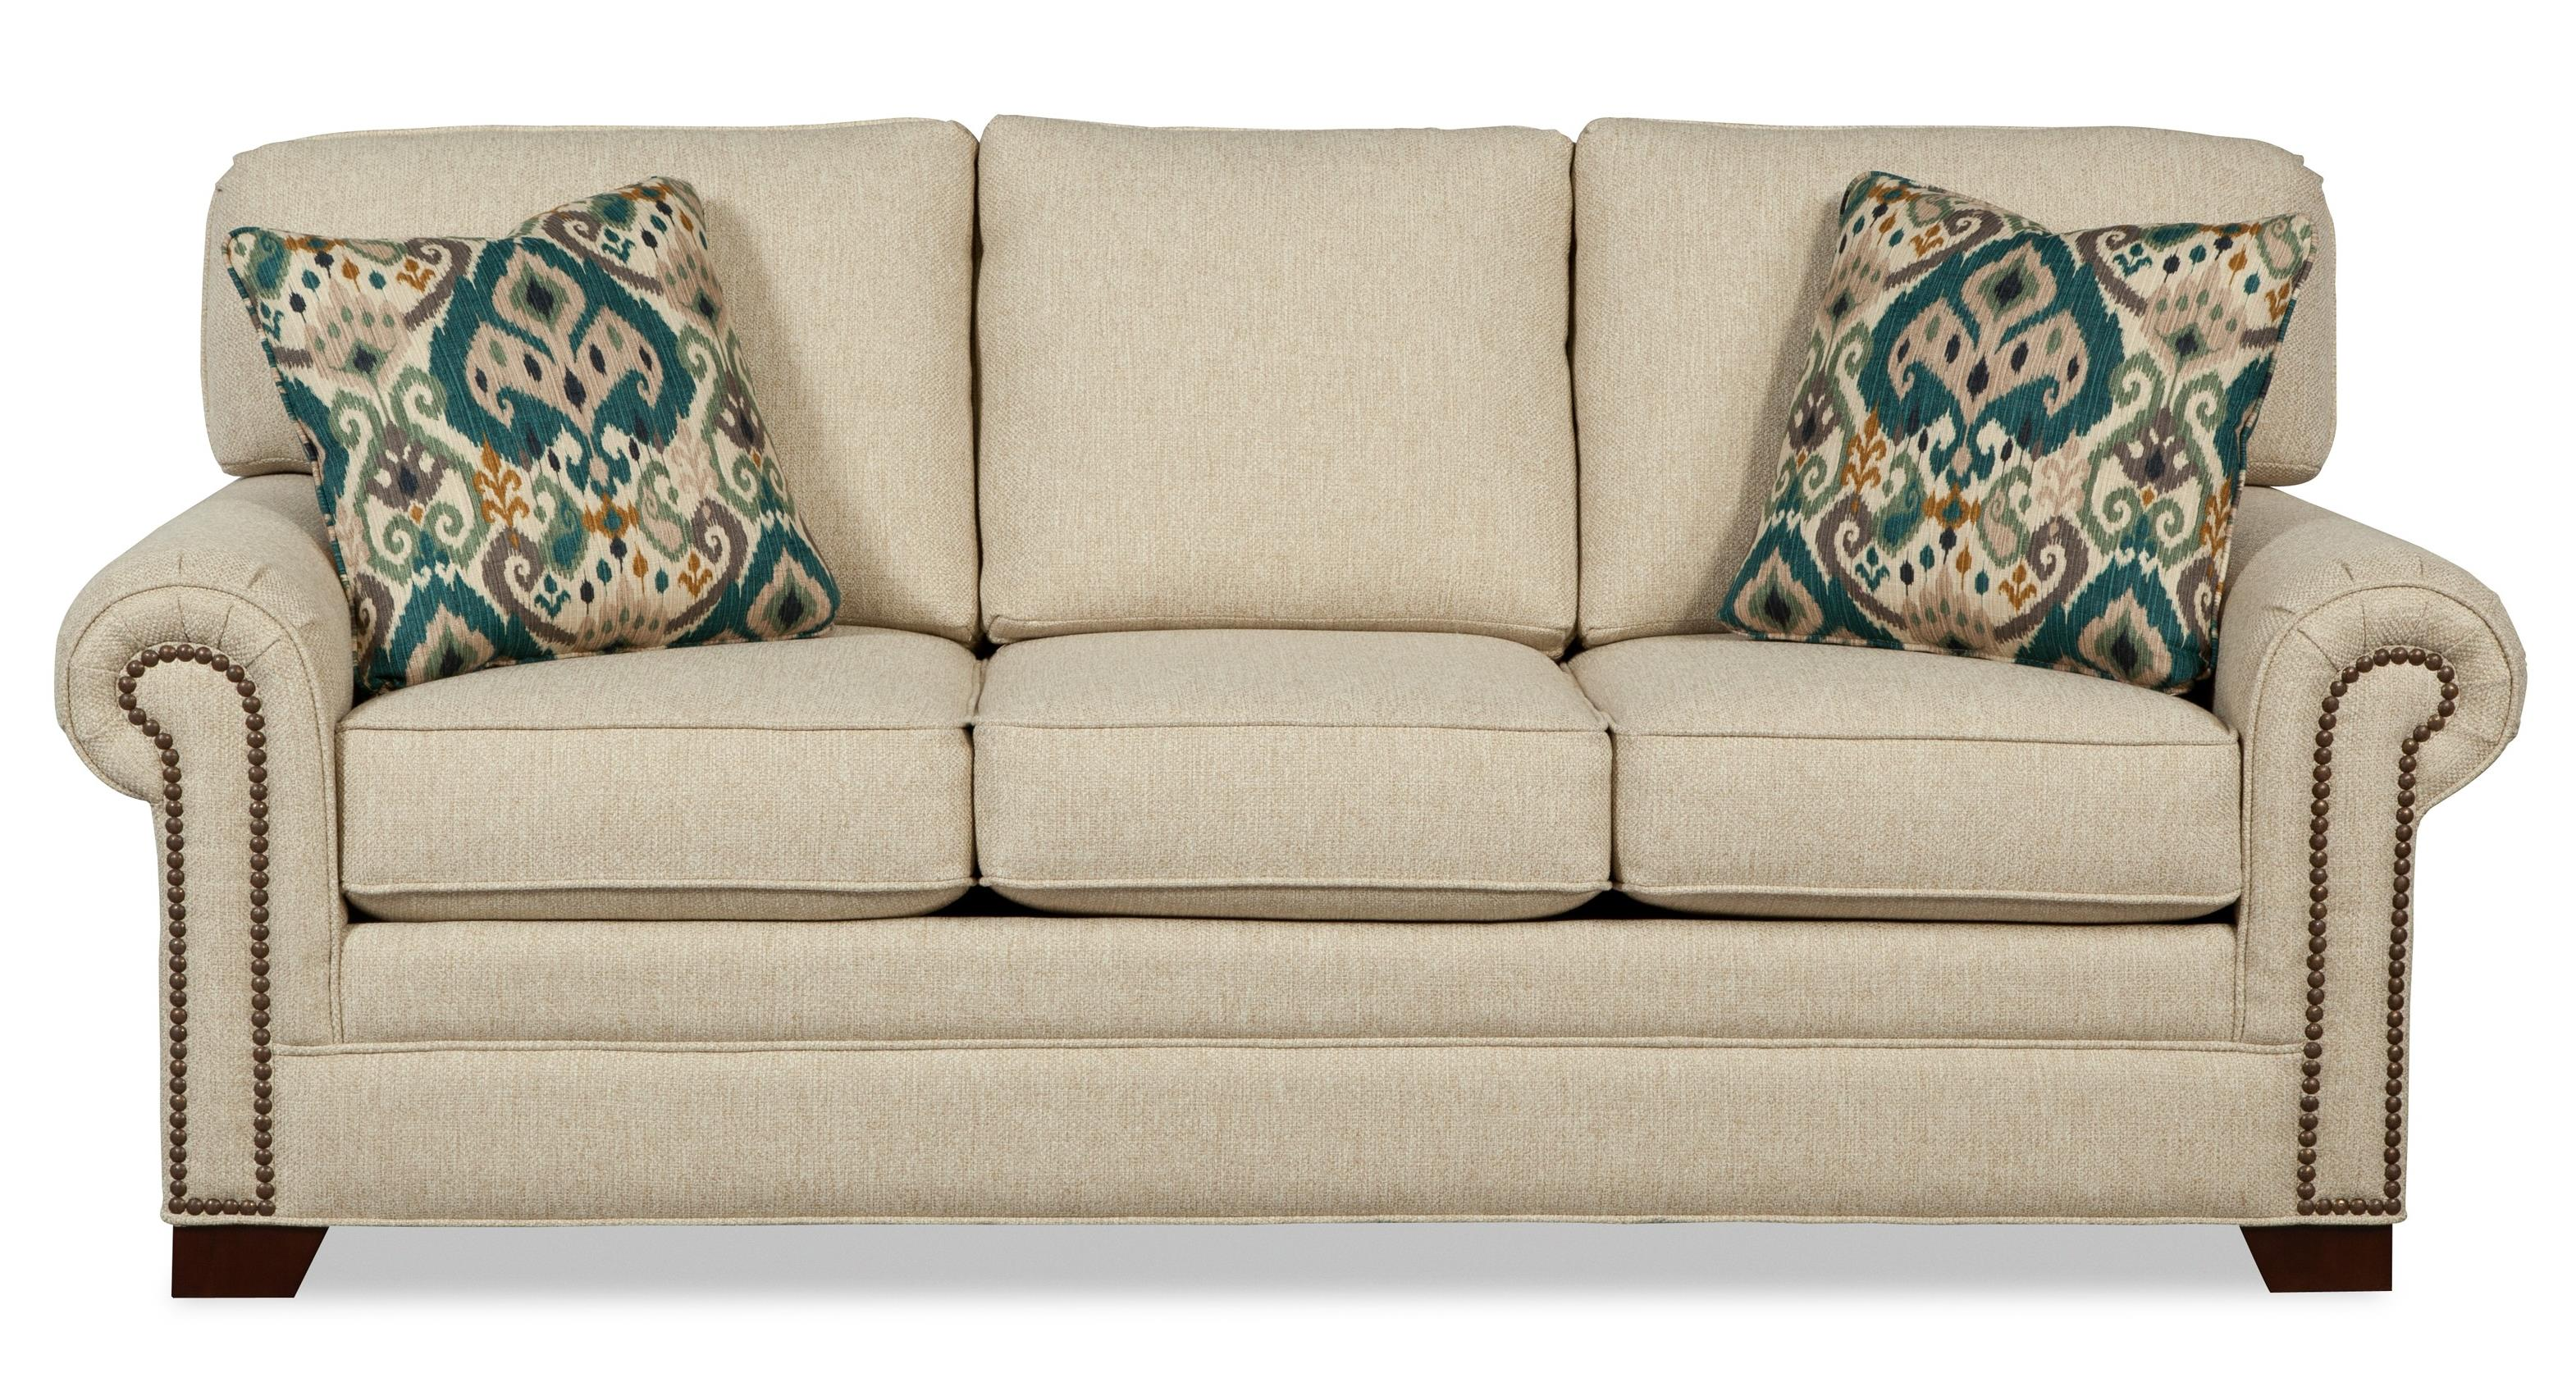 sofa nailhead whittemore sherrill leather transitional with large rolled arms and brass